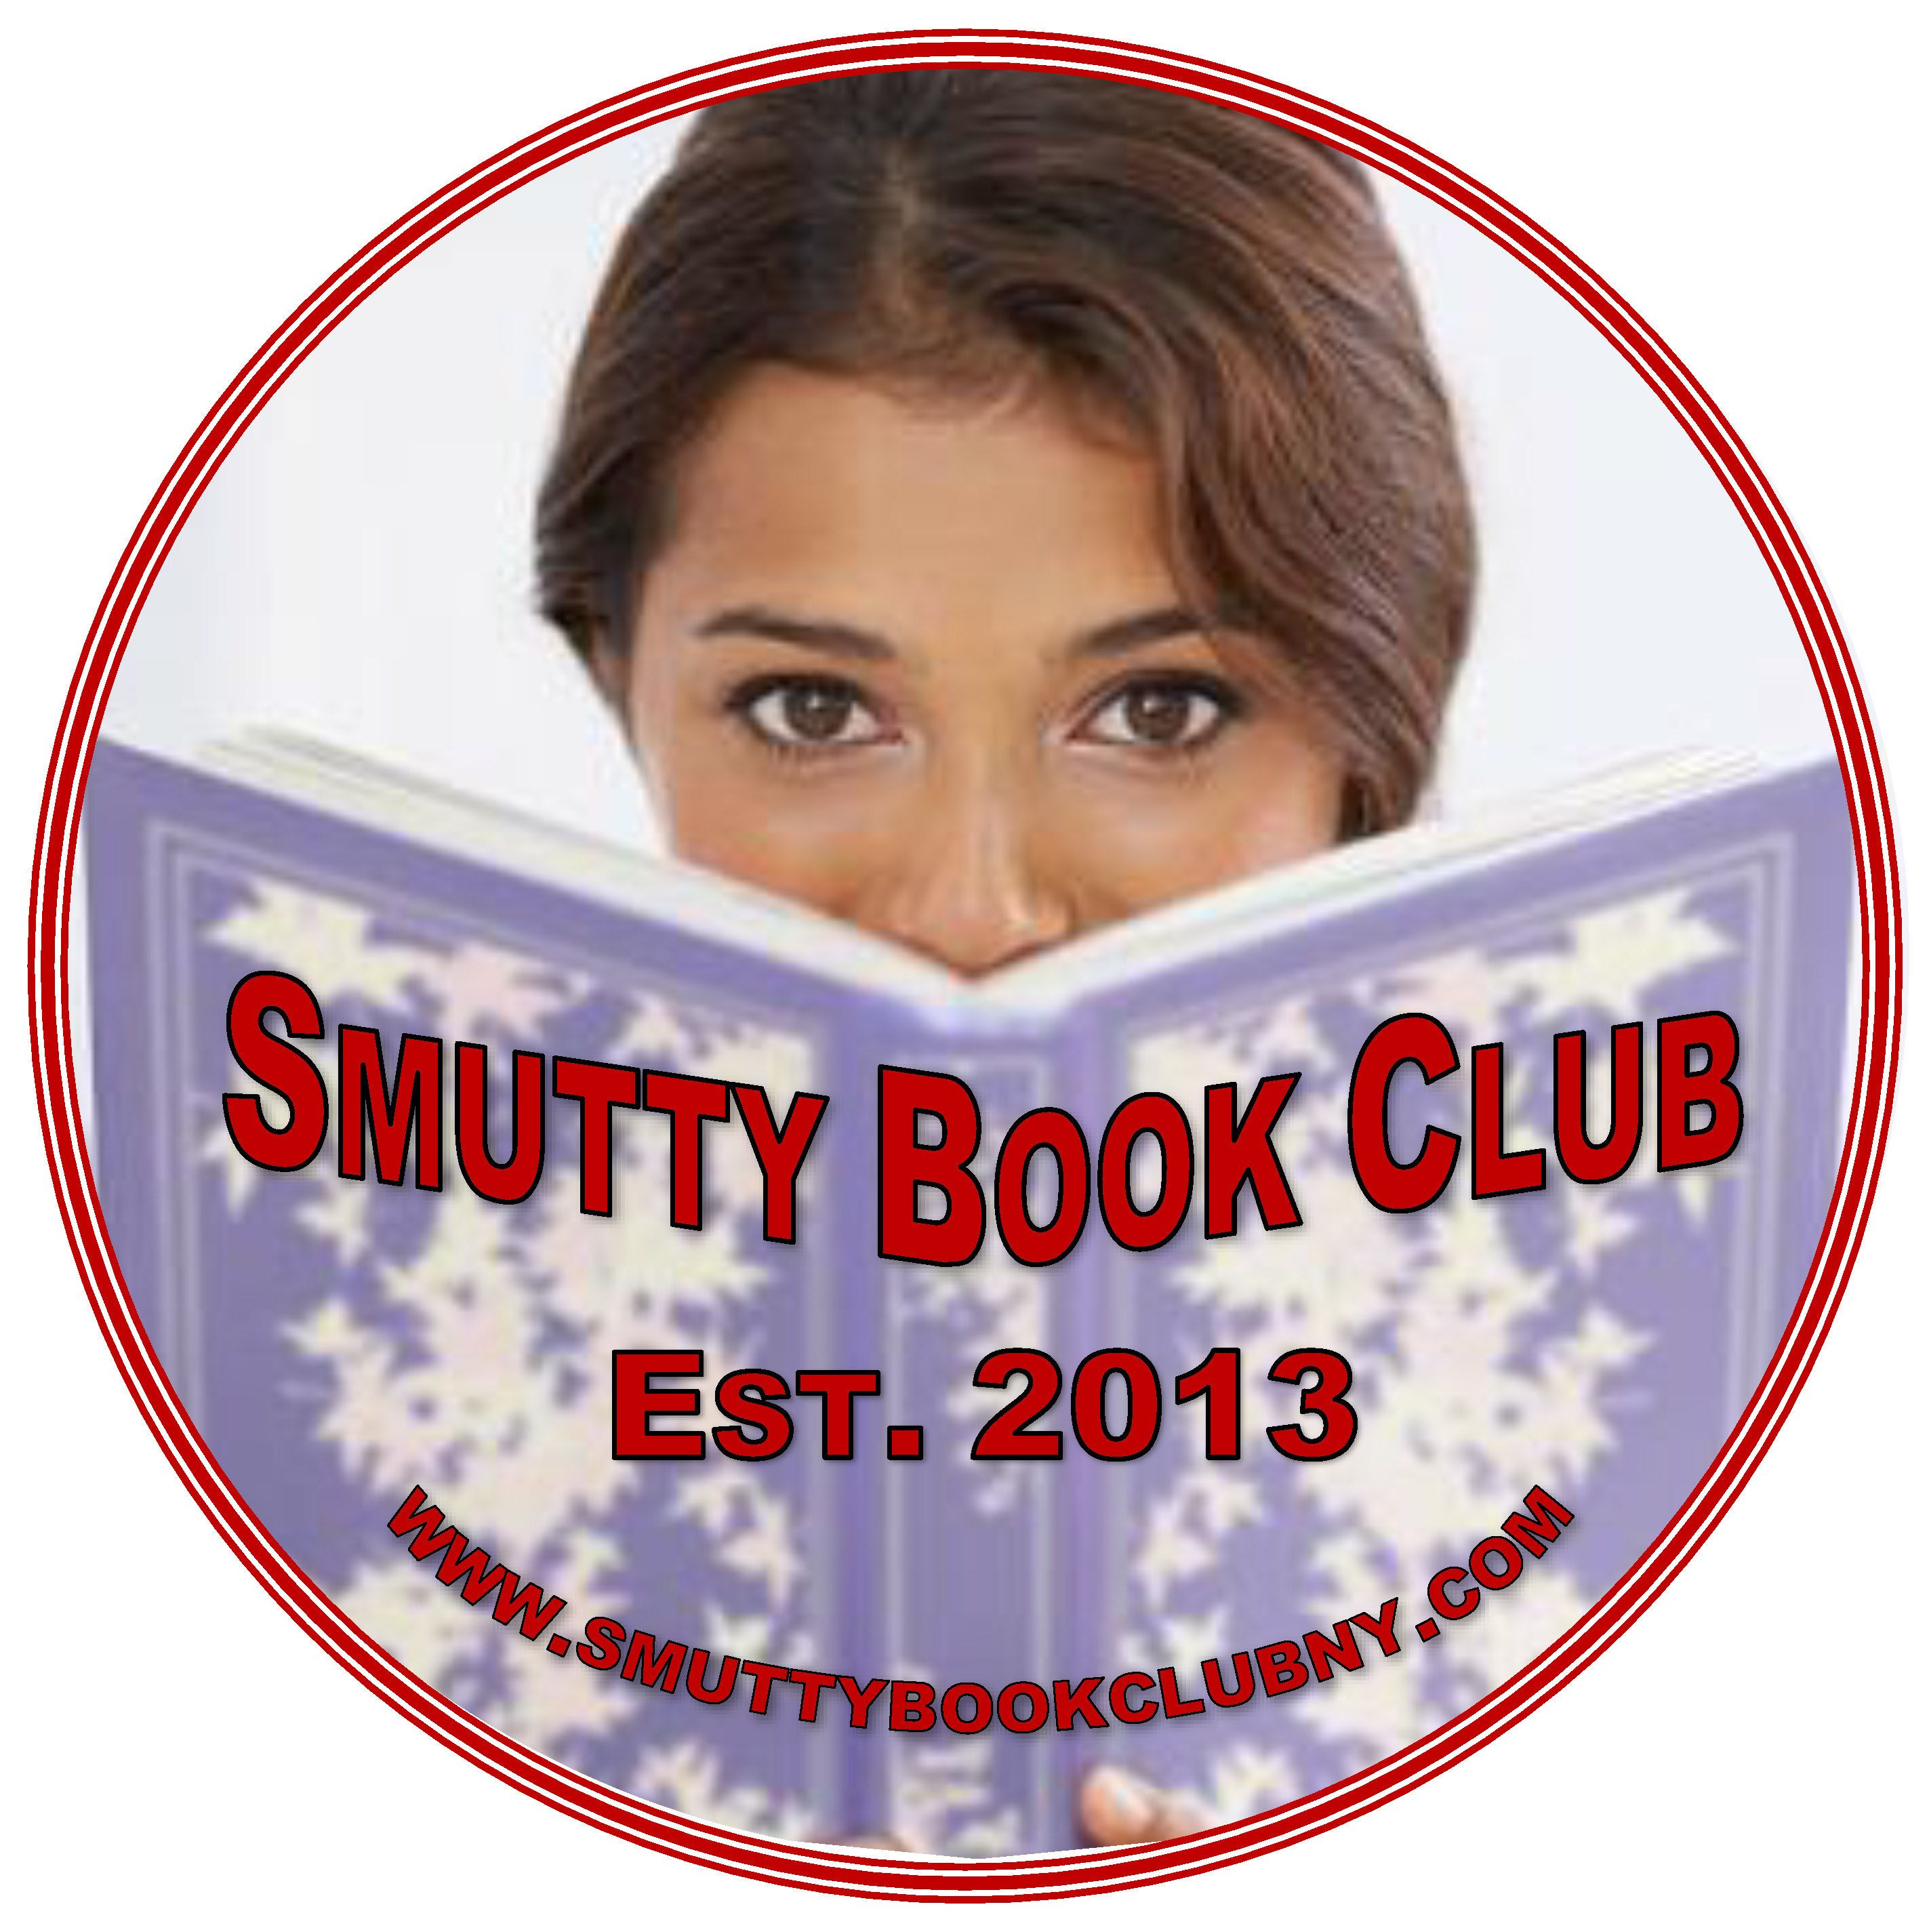 Smutty Book Club